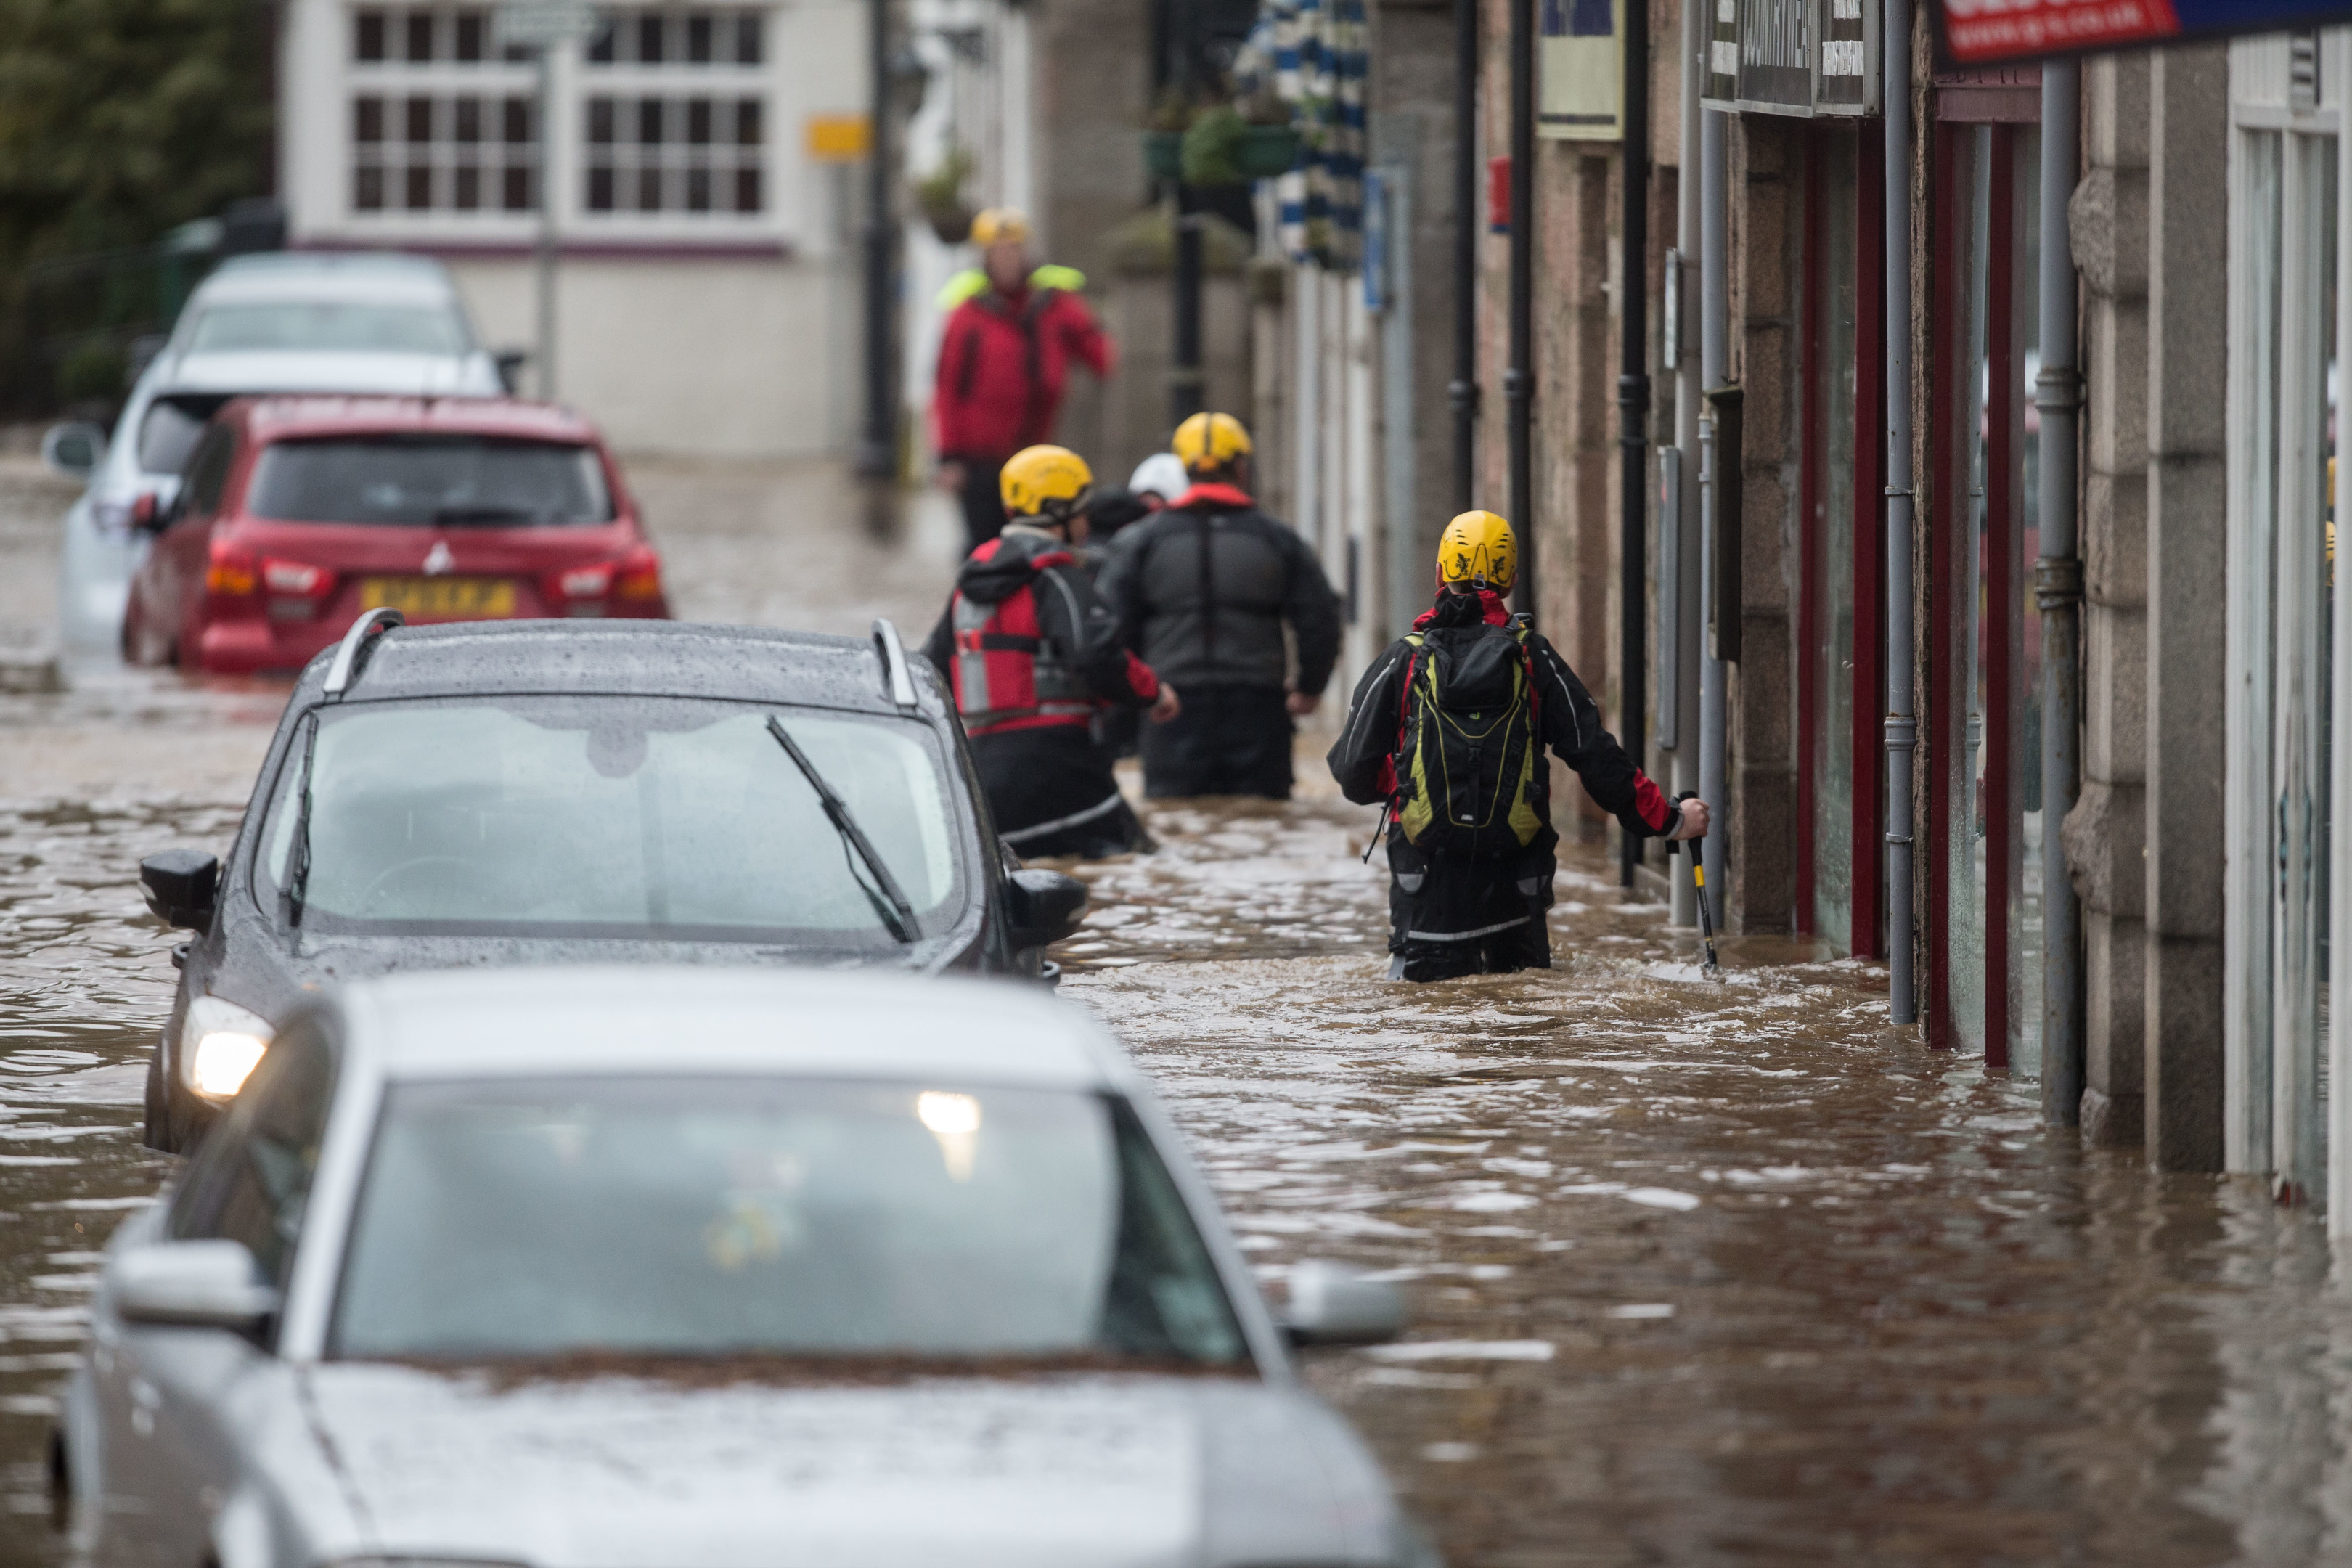 The streets of Ballater were filled with flood water.